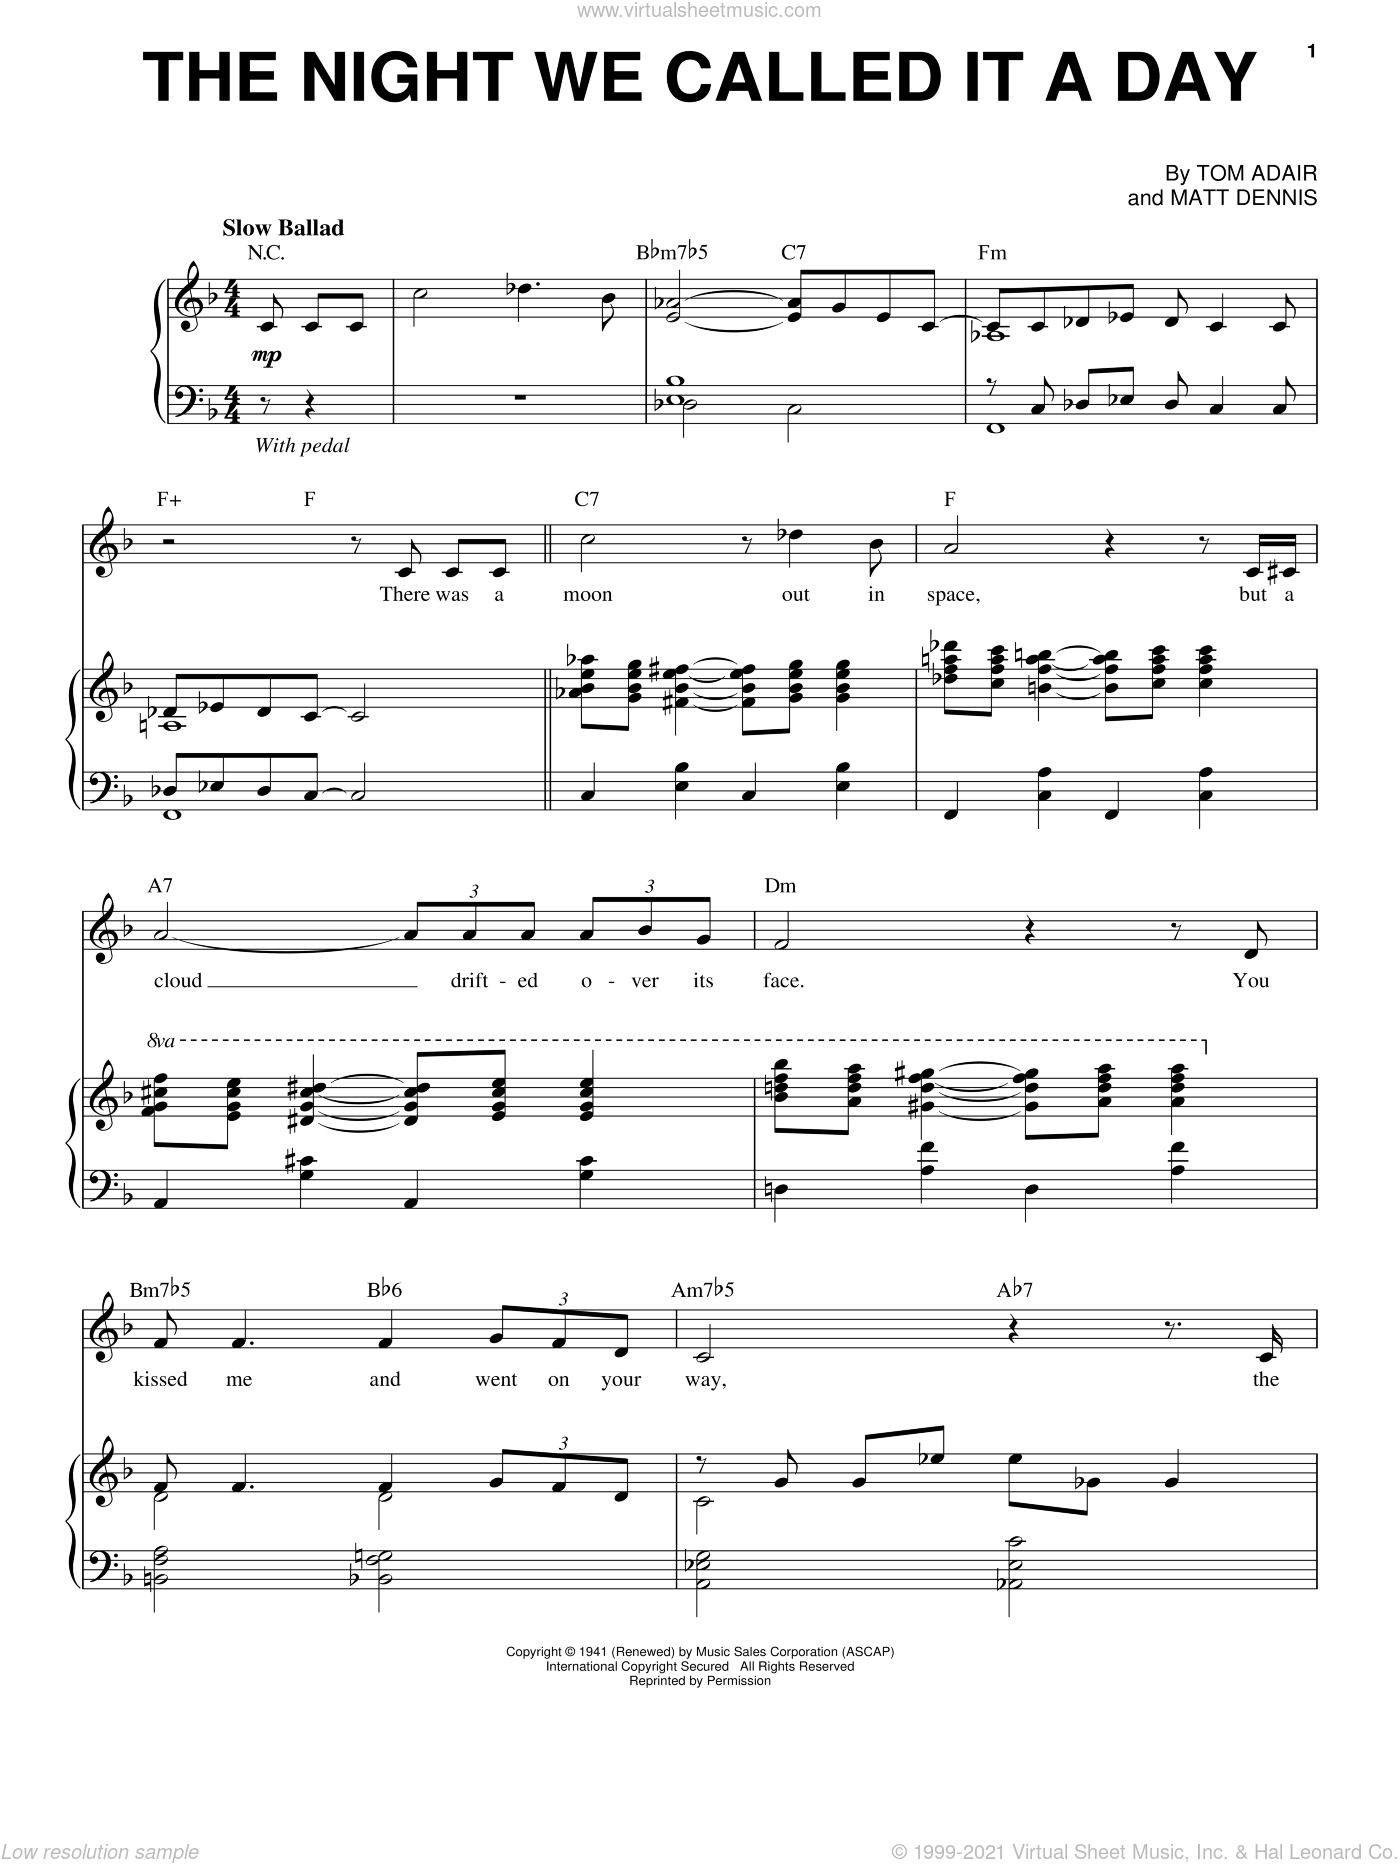 The Night We Called It A Day sheet music for voice and piano by Frank Sinatra, Matt Dennis and Tom Adair, intermediate skill level